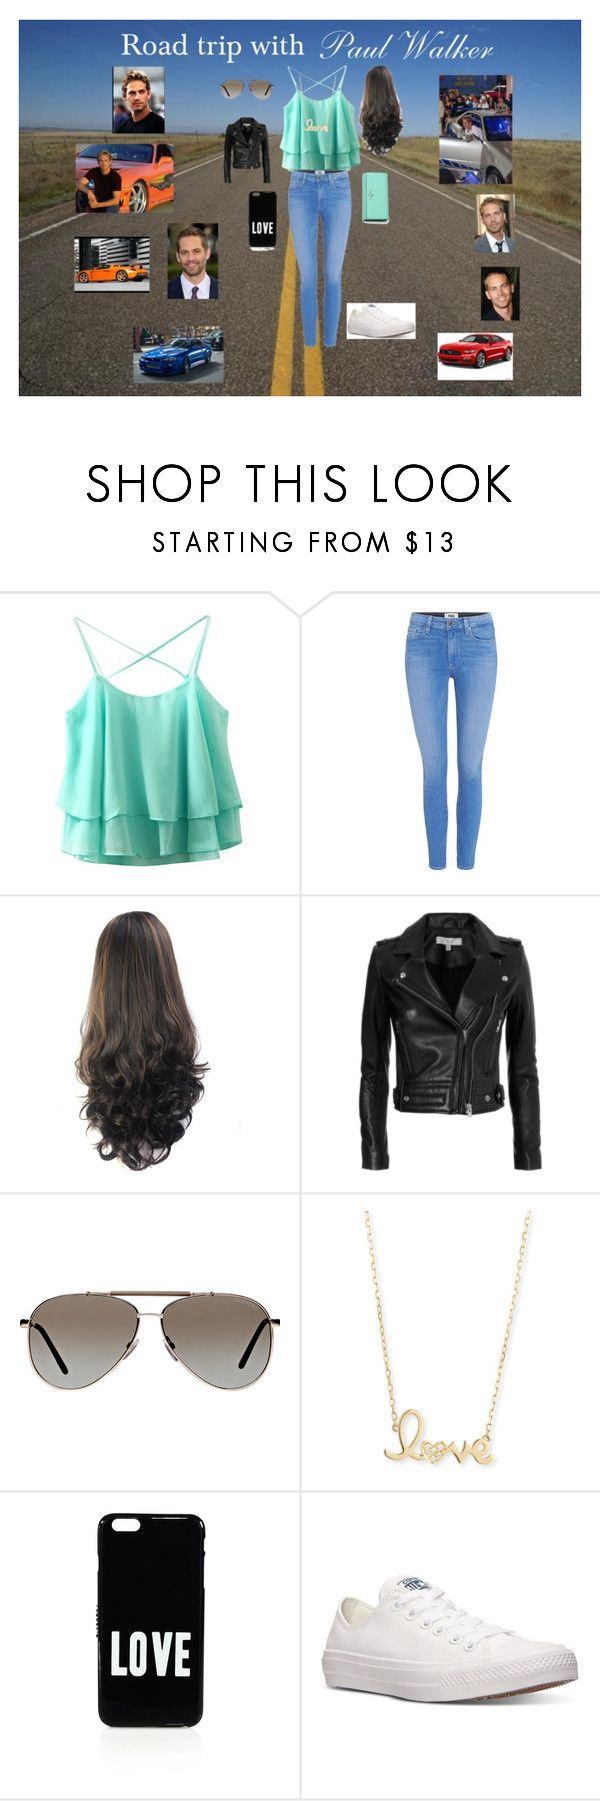 """""""Road trip with Paul Walker"""" by dsherbundy ❤ liked on Polyvore featuring Paige Denim, IRO, Tom Ford, Sydney Evan, Givenchy, Converse, Kate Spade, Carrera and VIVO"""